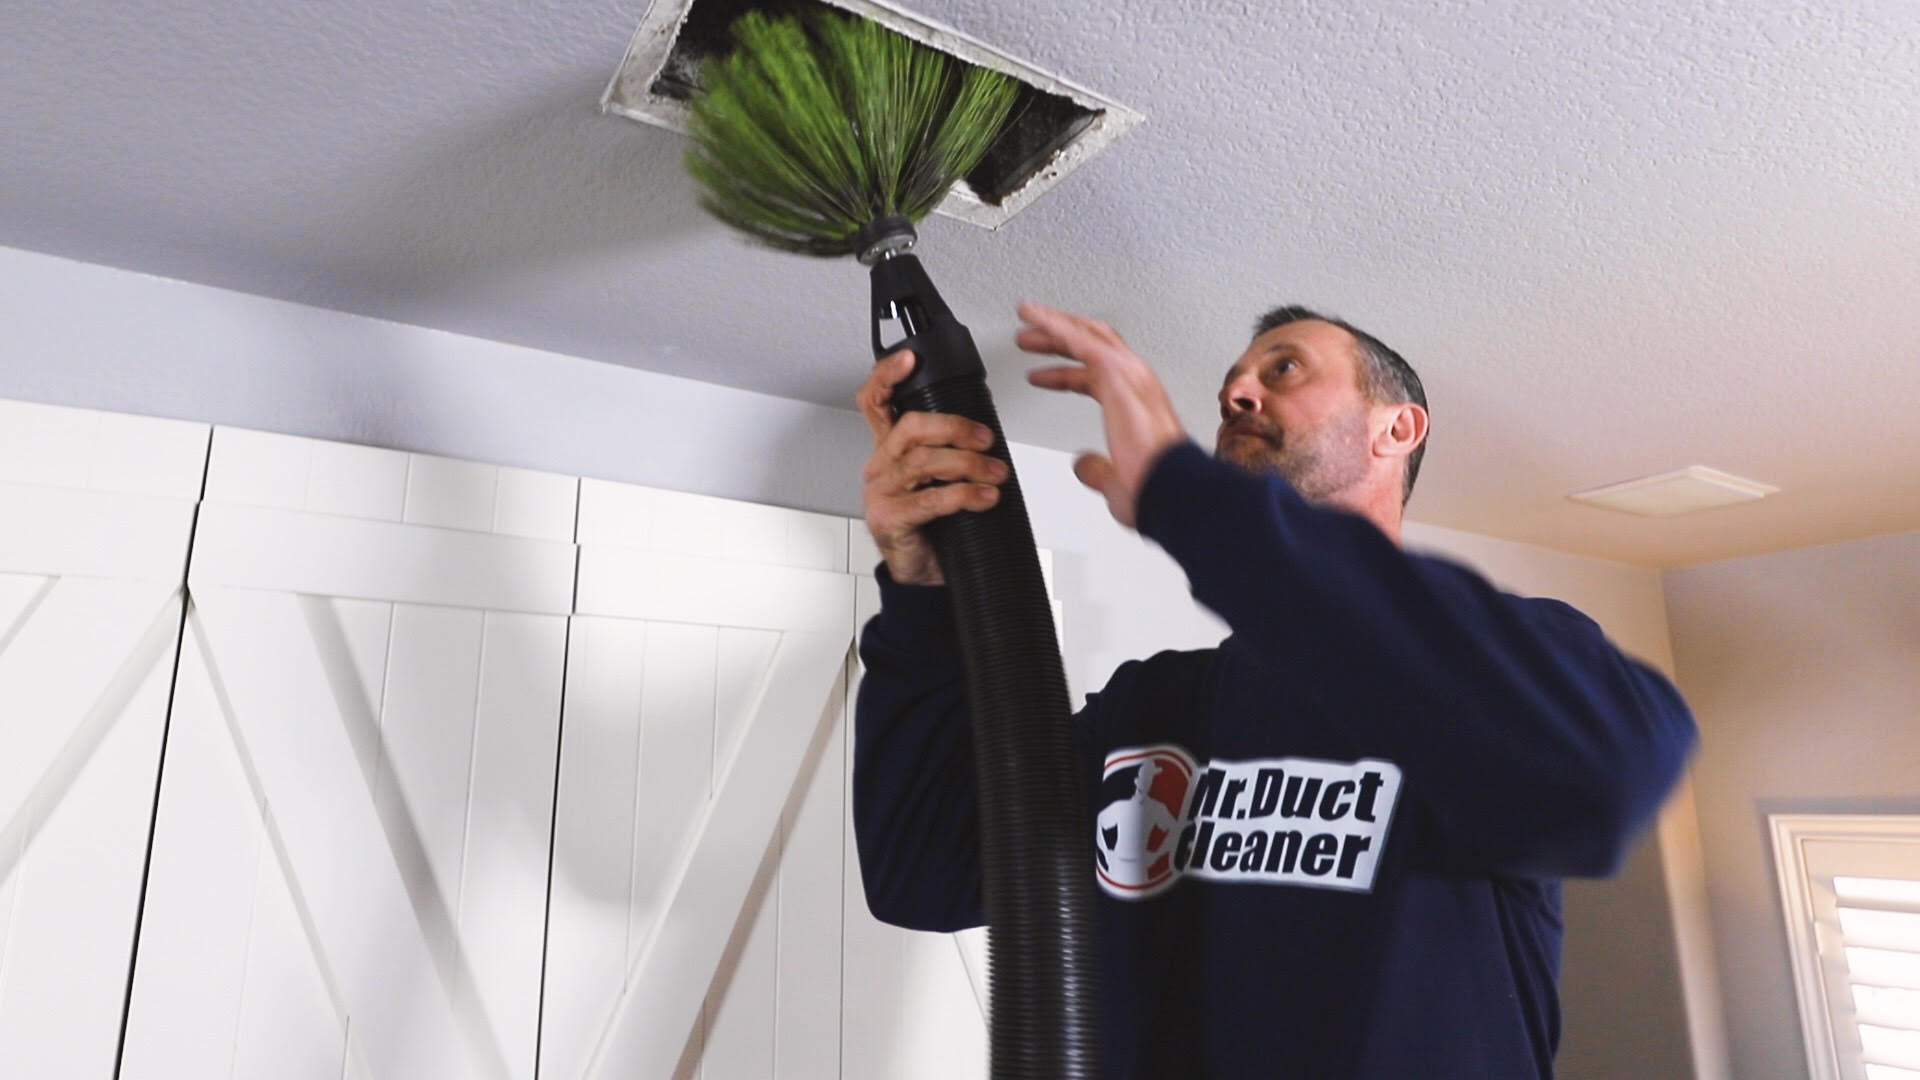 duct cleaning service usa